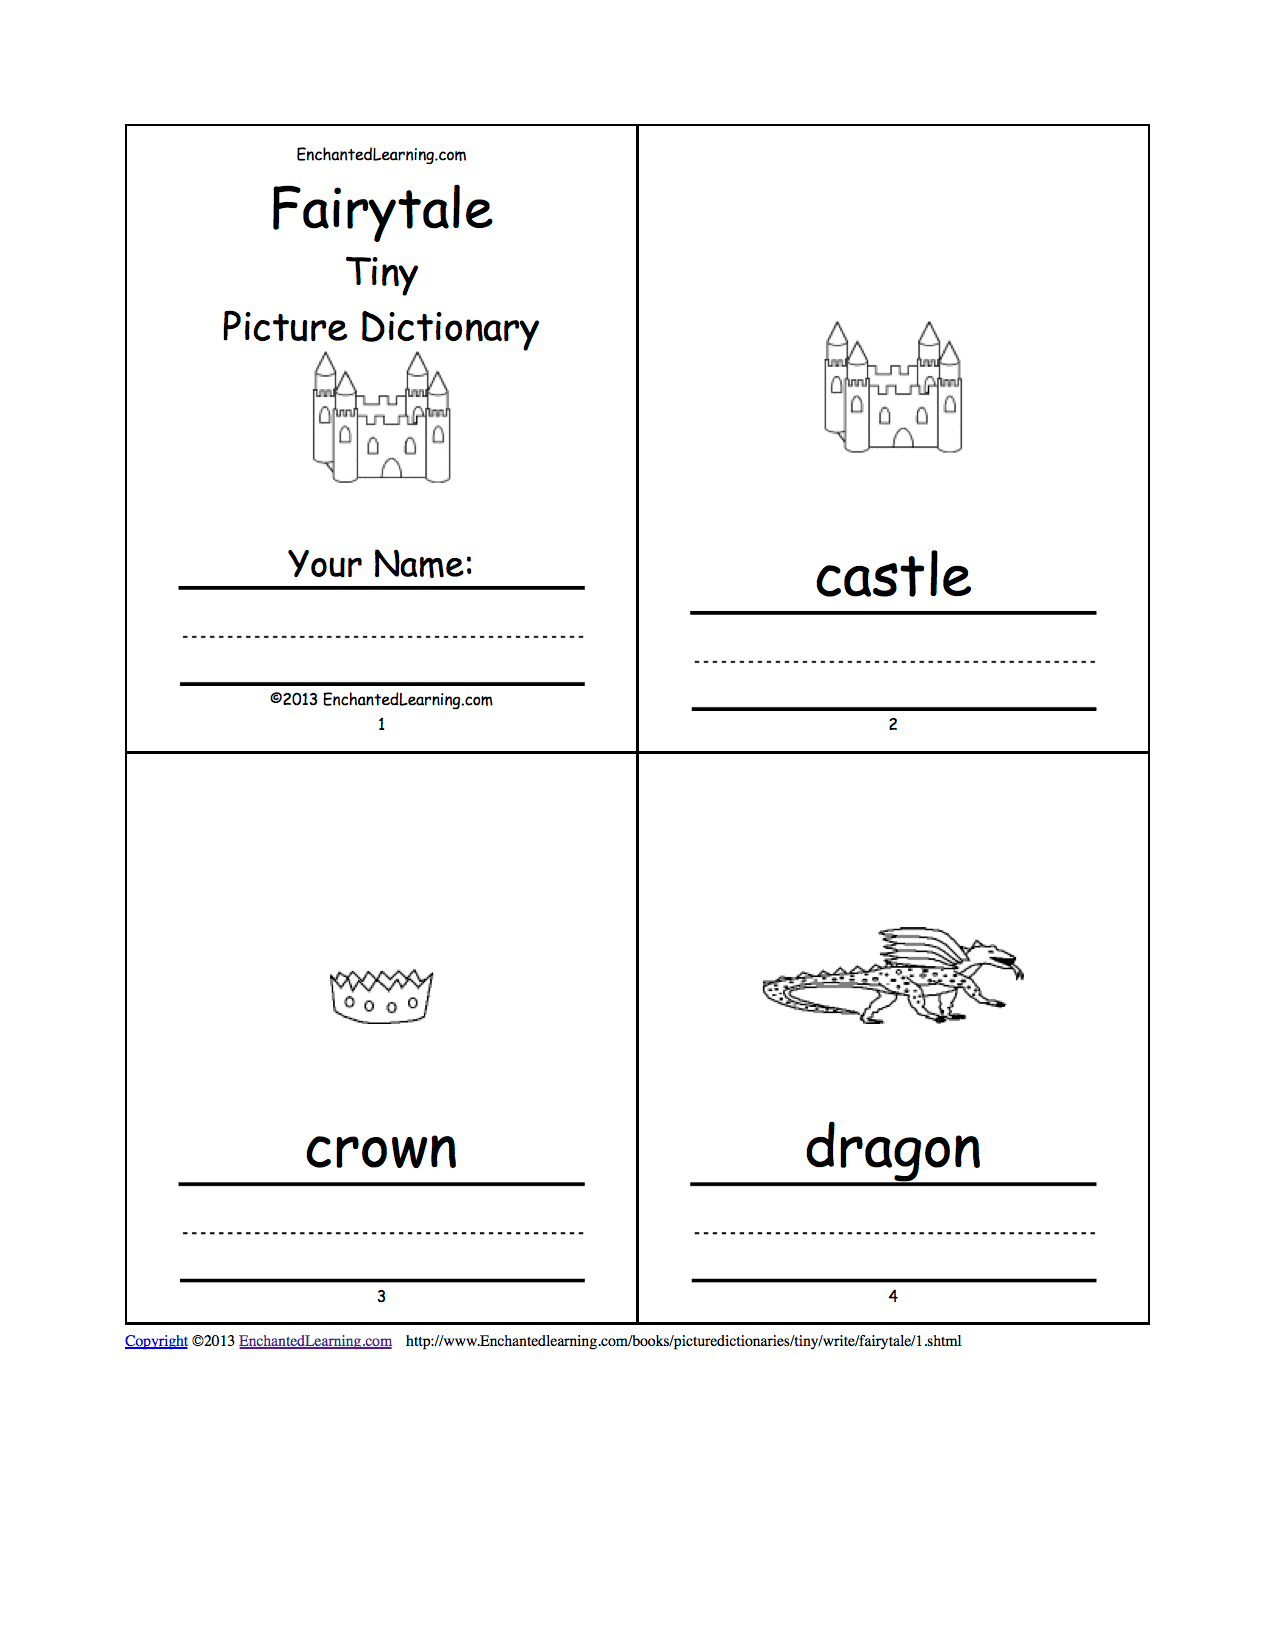 Fairytale Picture Dictionary